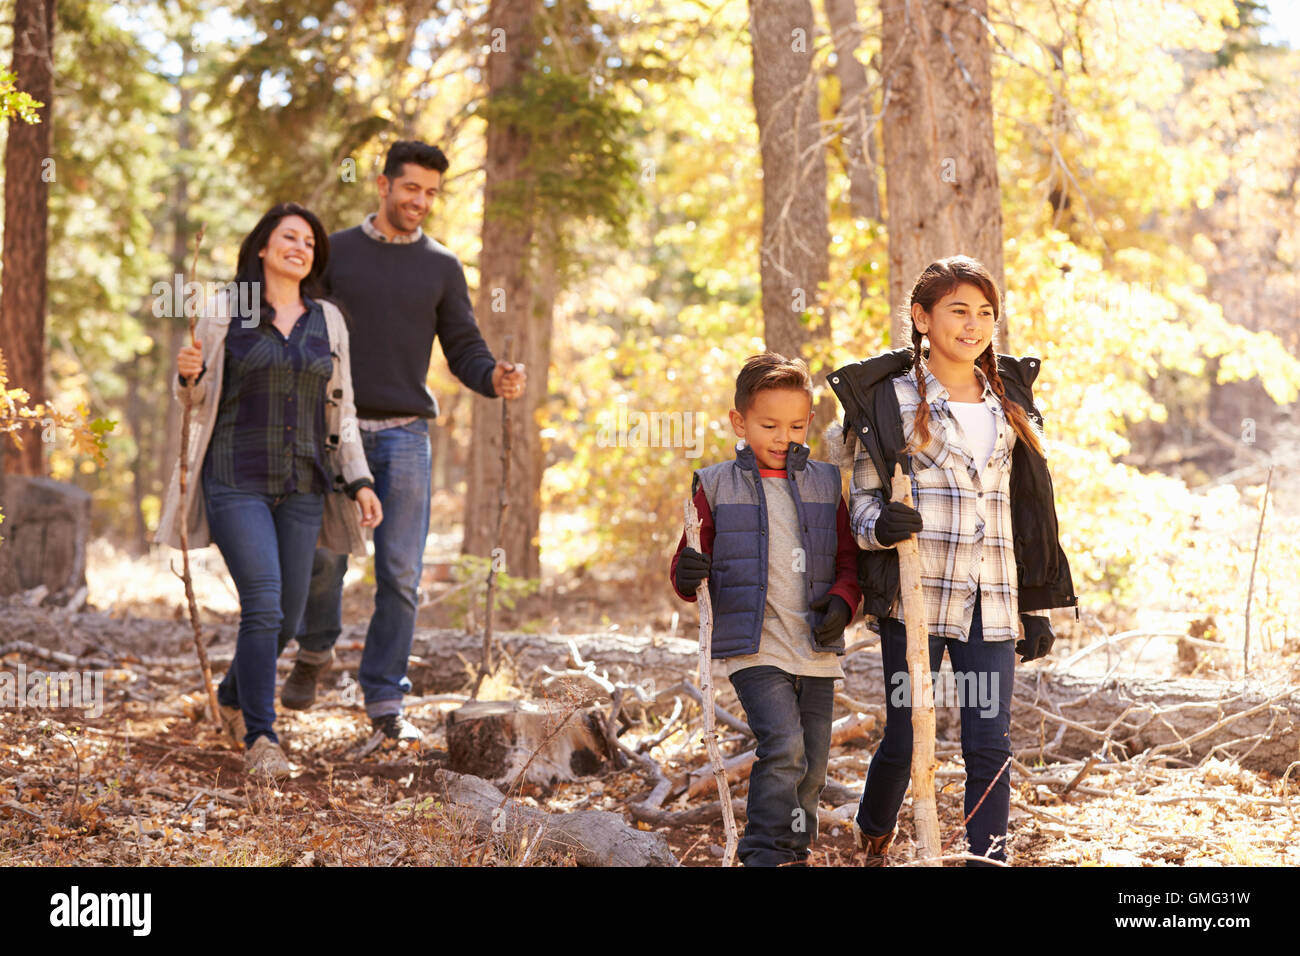 Close Up Of Happy Hispanic Family Hiking In Forest